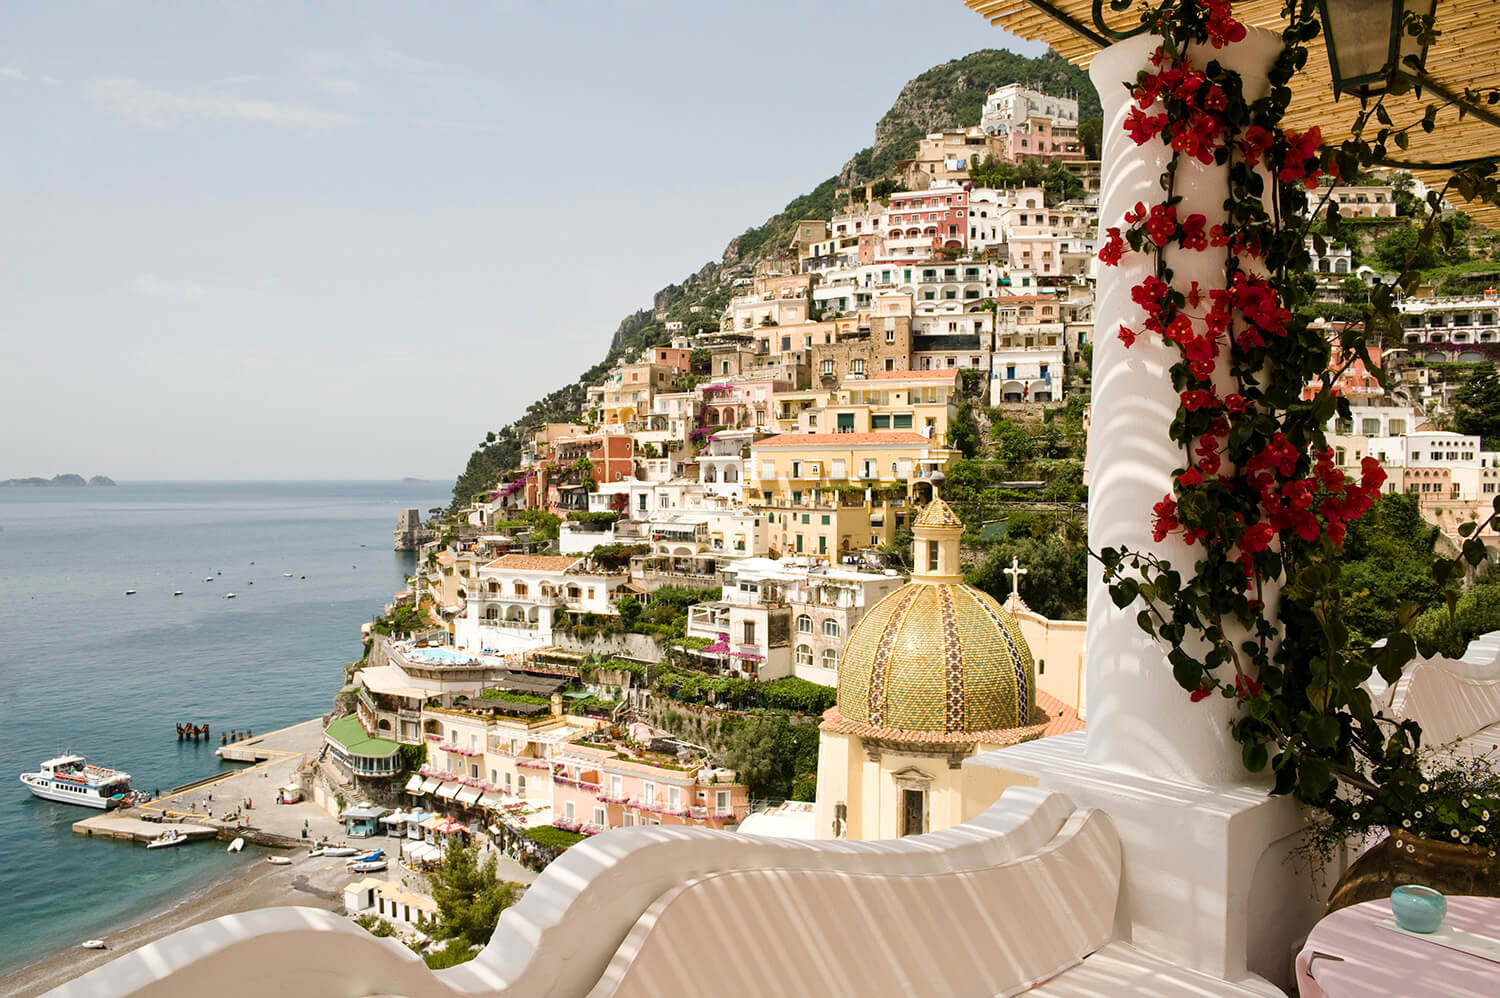 Panoramic view from the terrace of Albergo Le Sirenuse - Positano